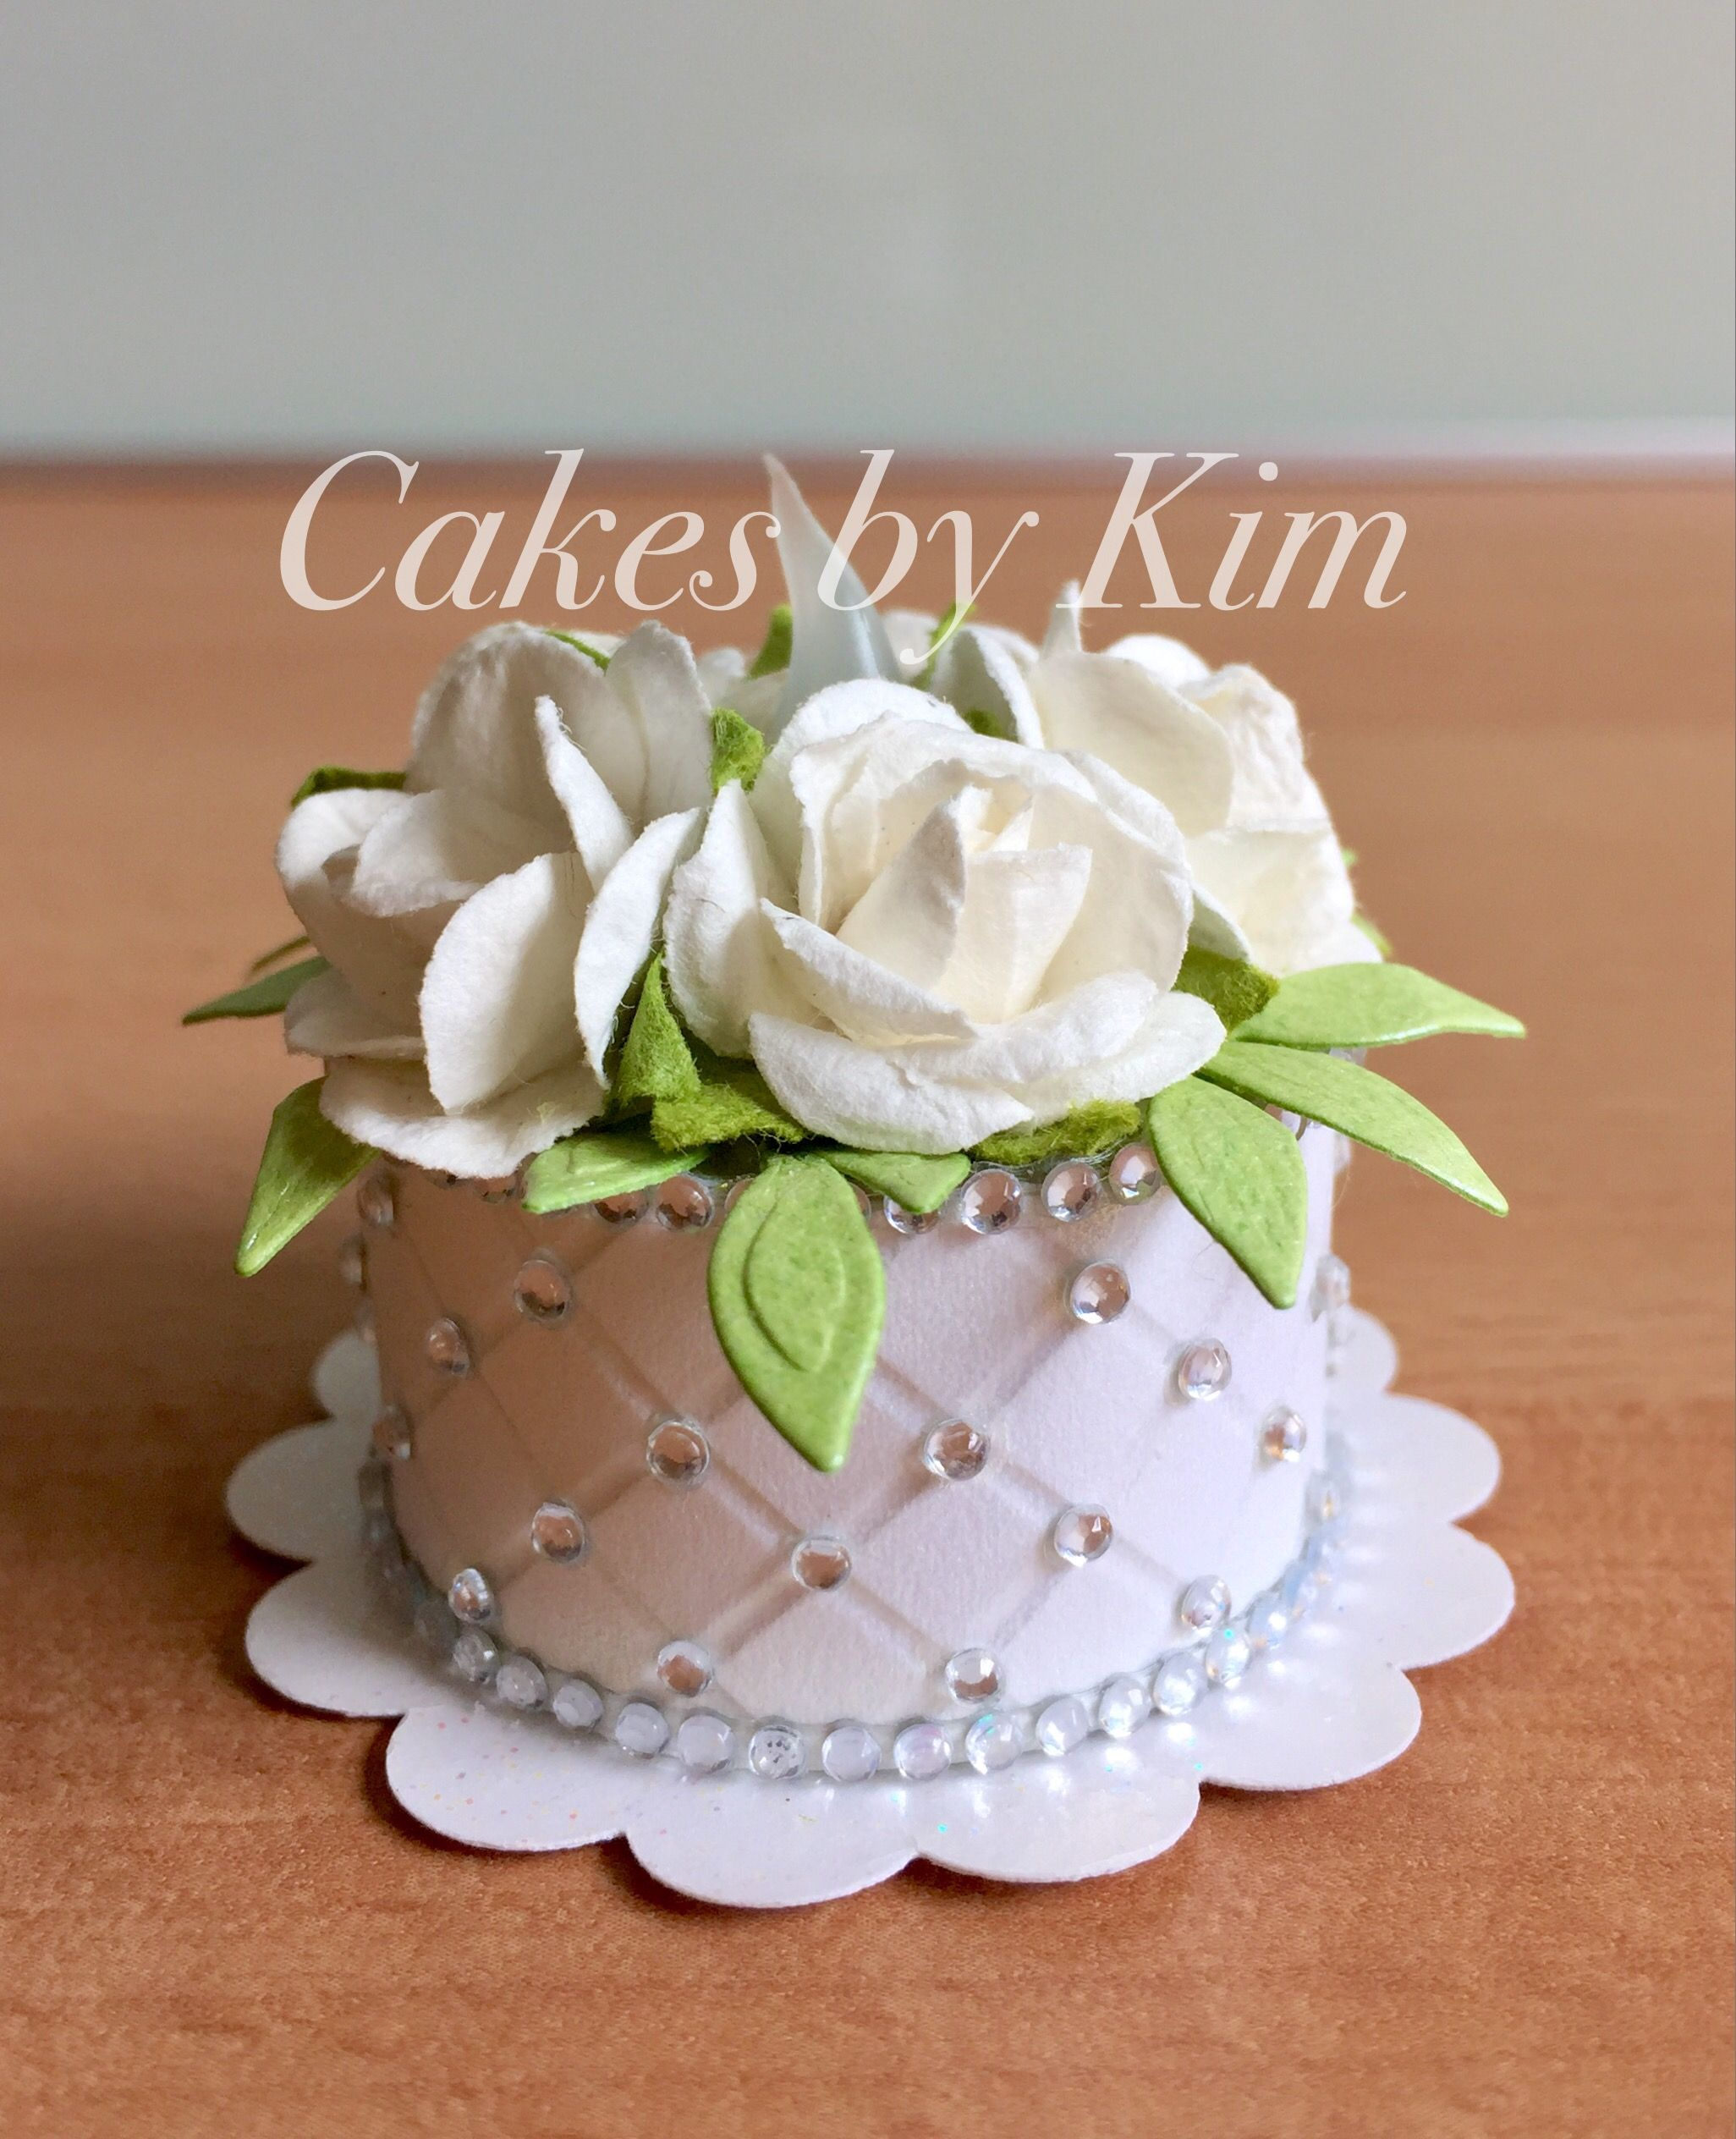 Wedding Tea Light Cake Made By Kim Lanterns Candles